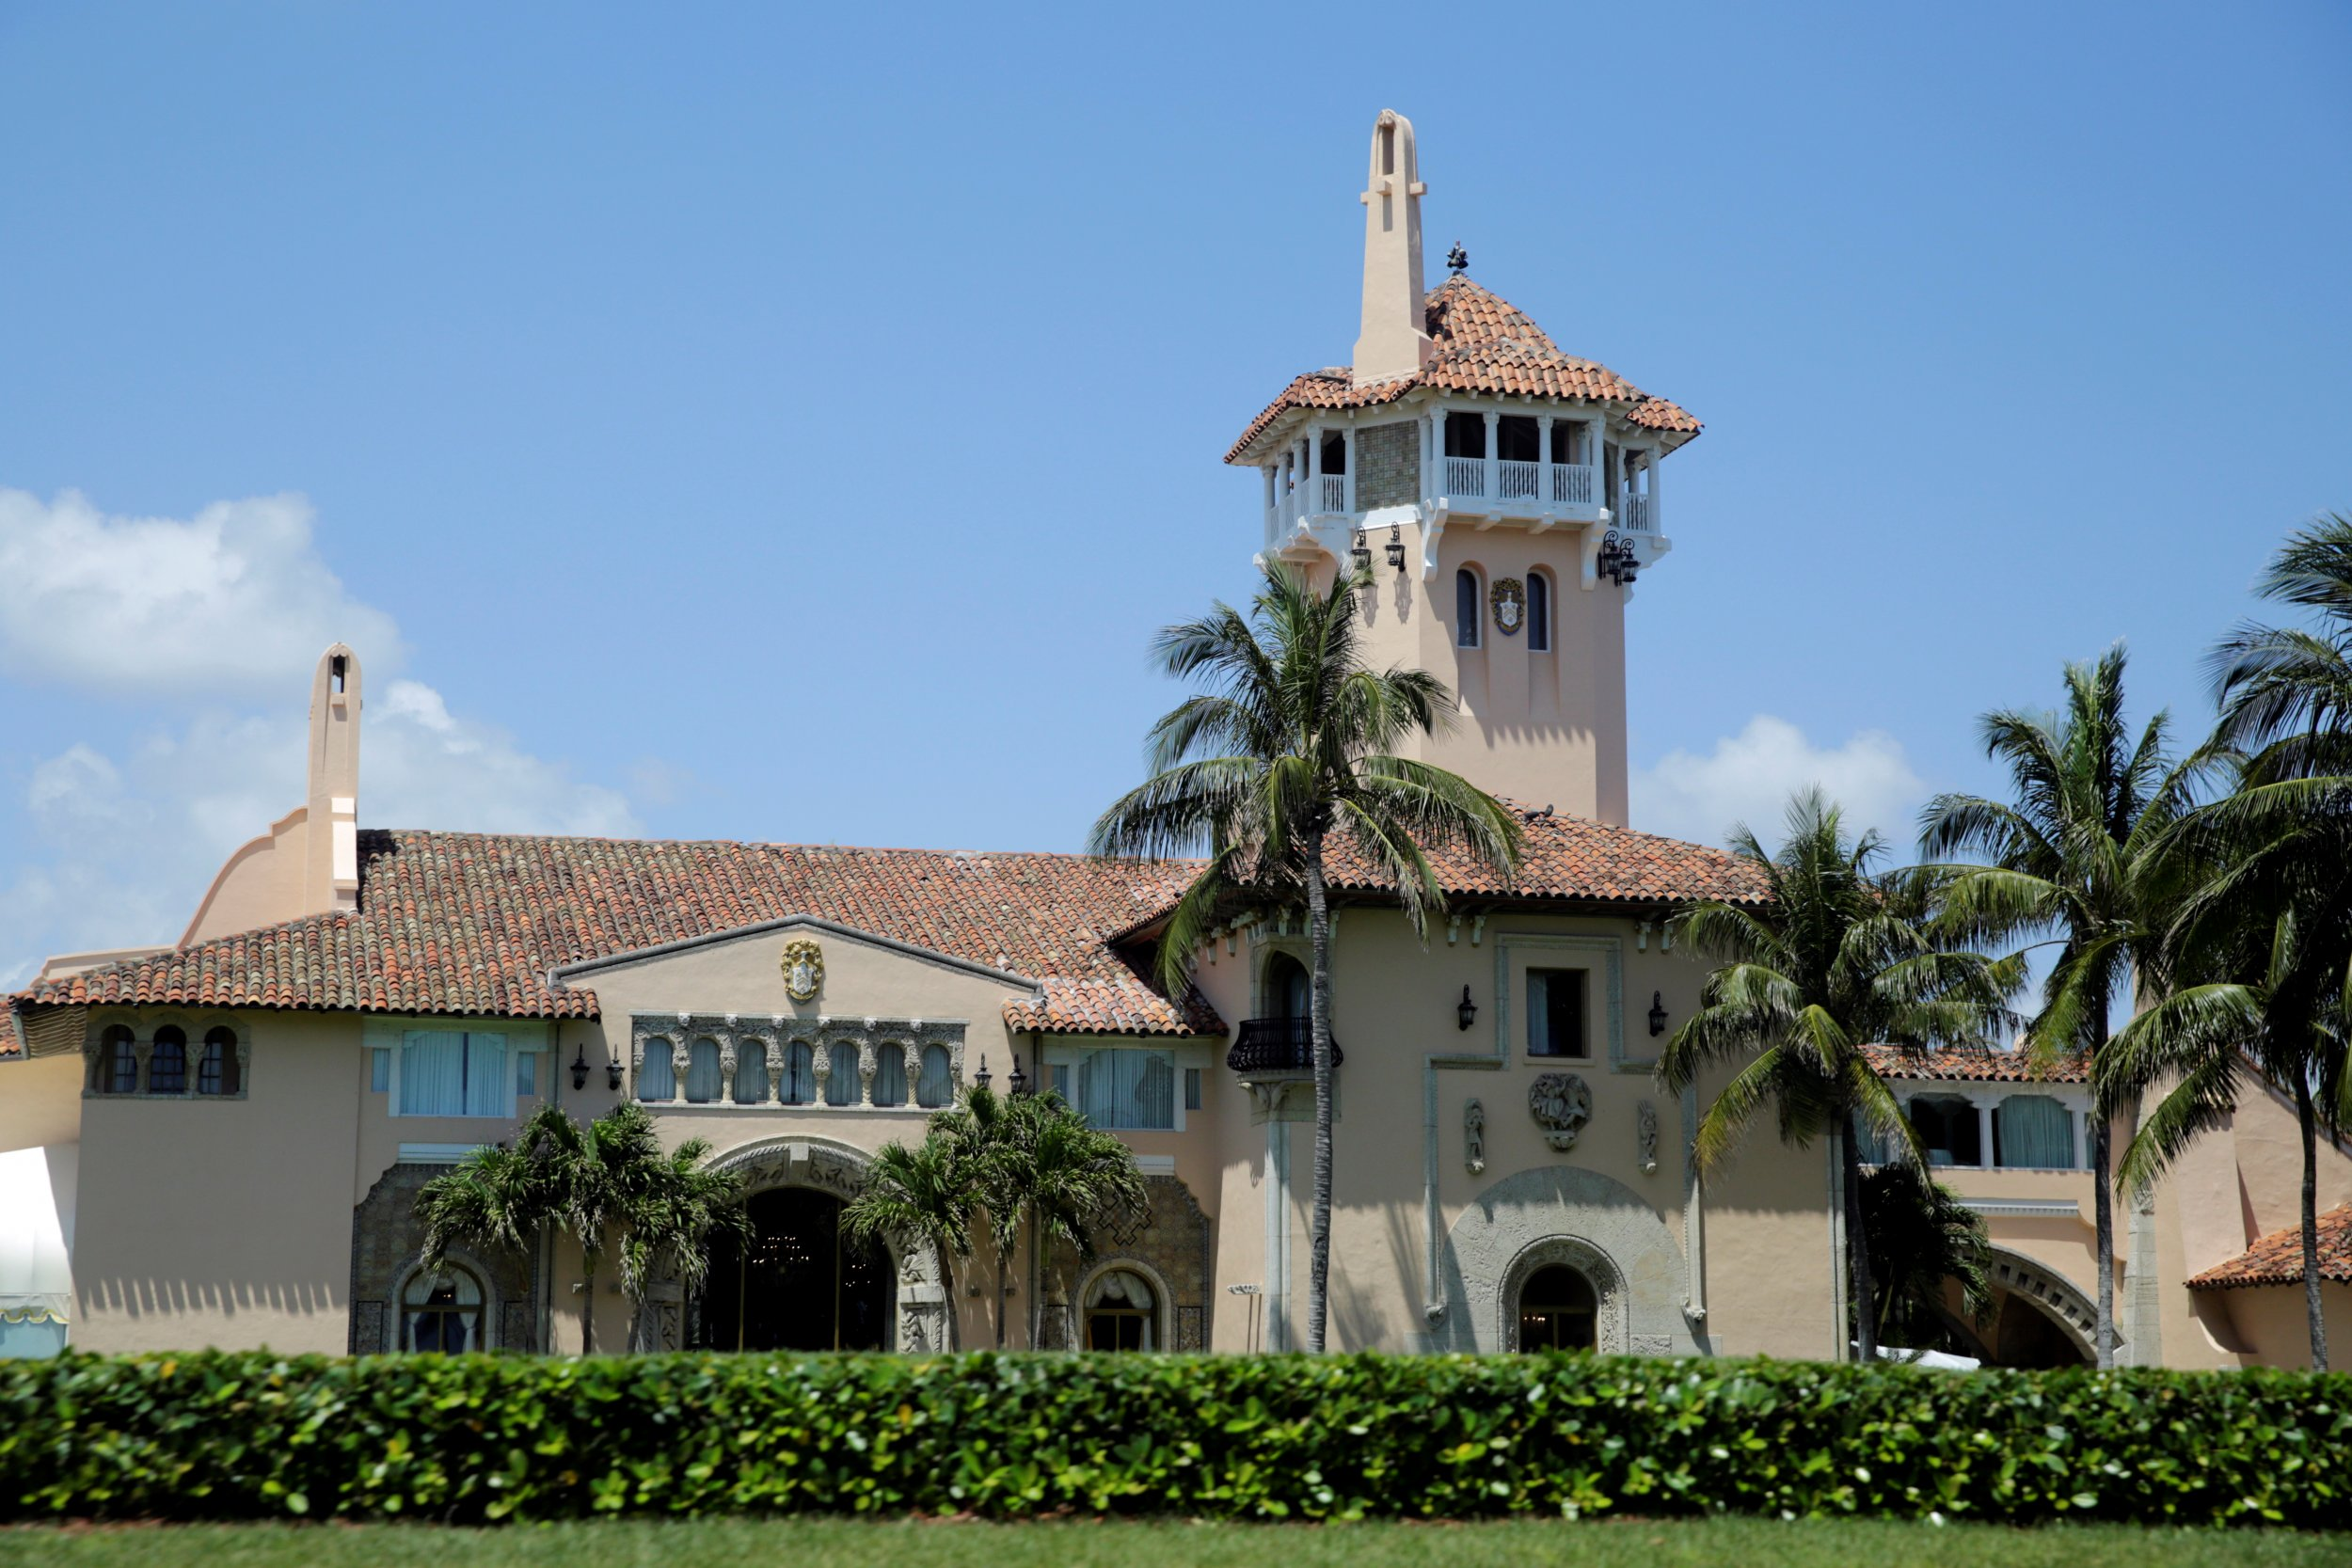 Mar-a-Lago Fundraiser: Cleveland Clinic Vows to Go Ahead